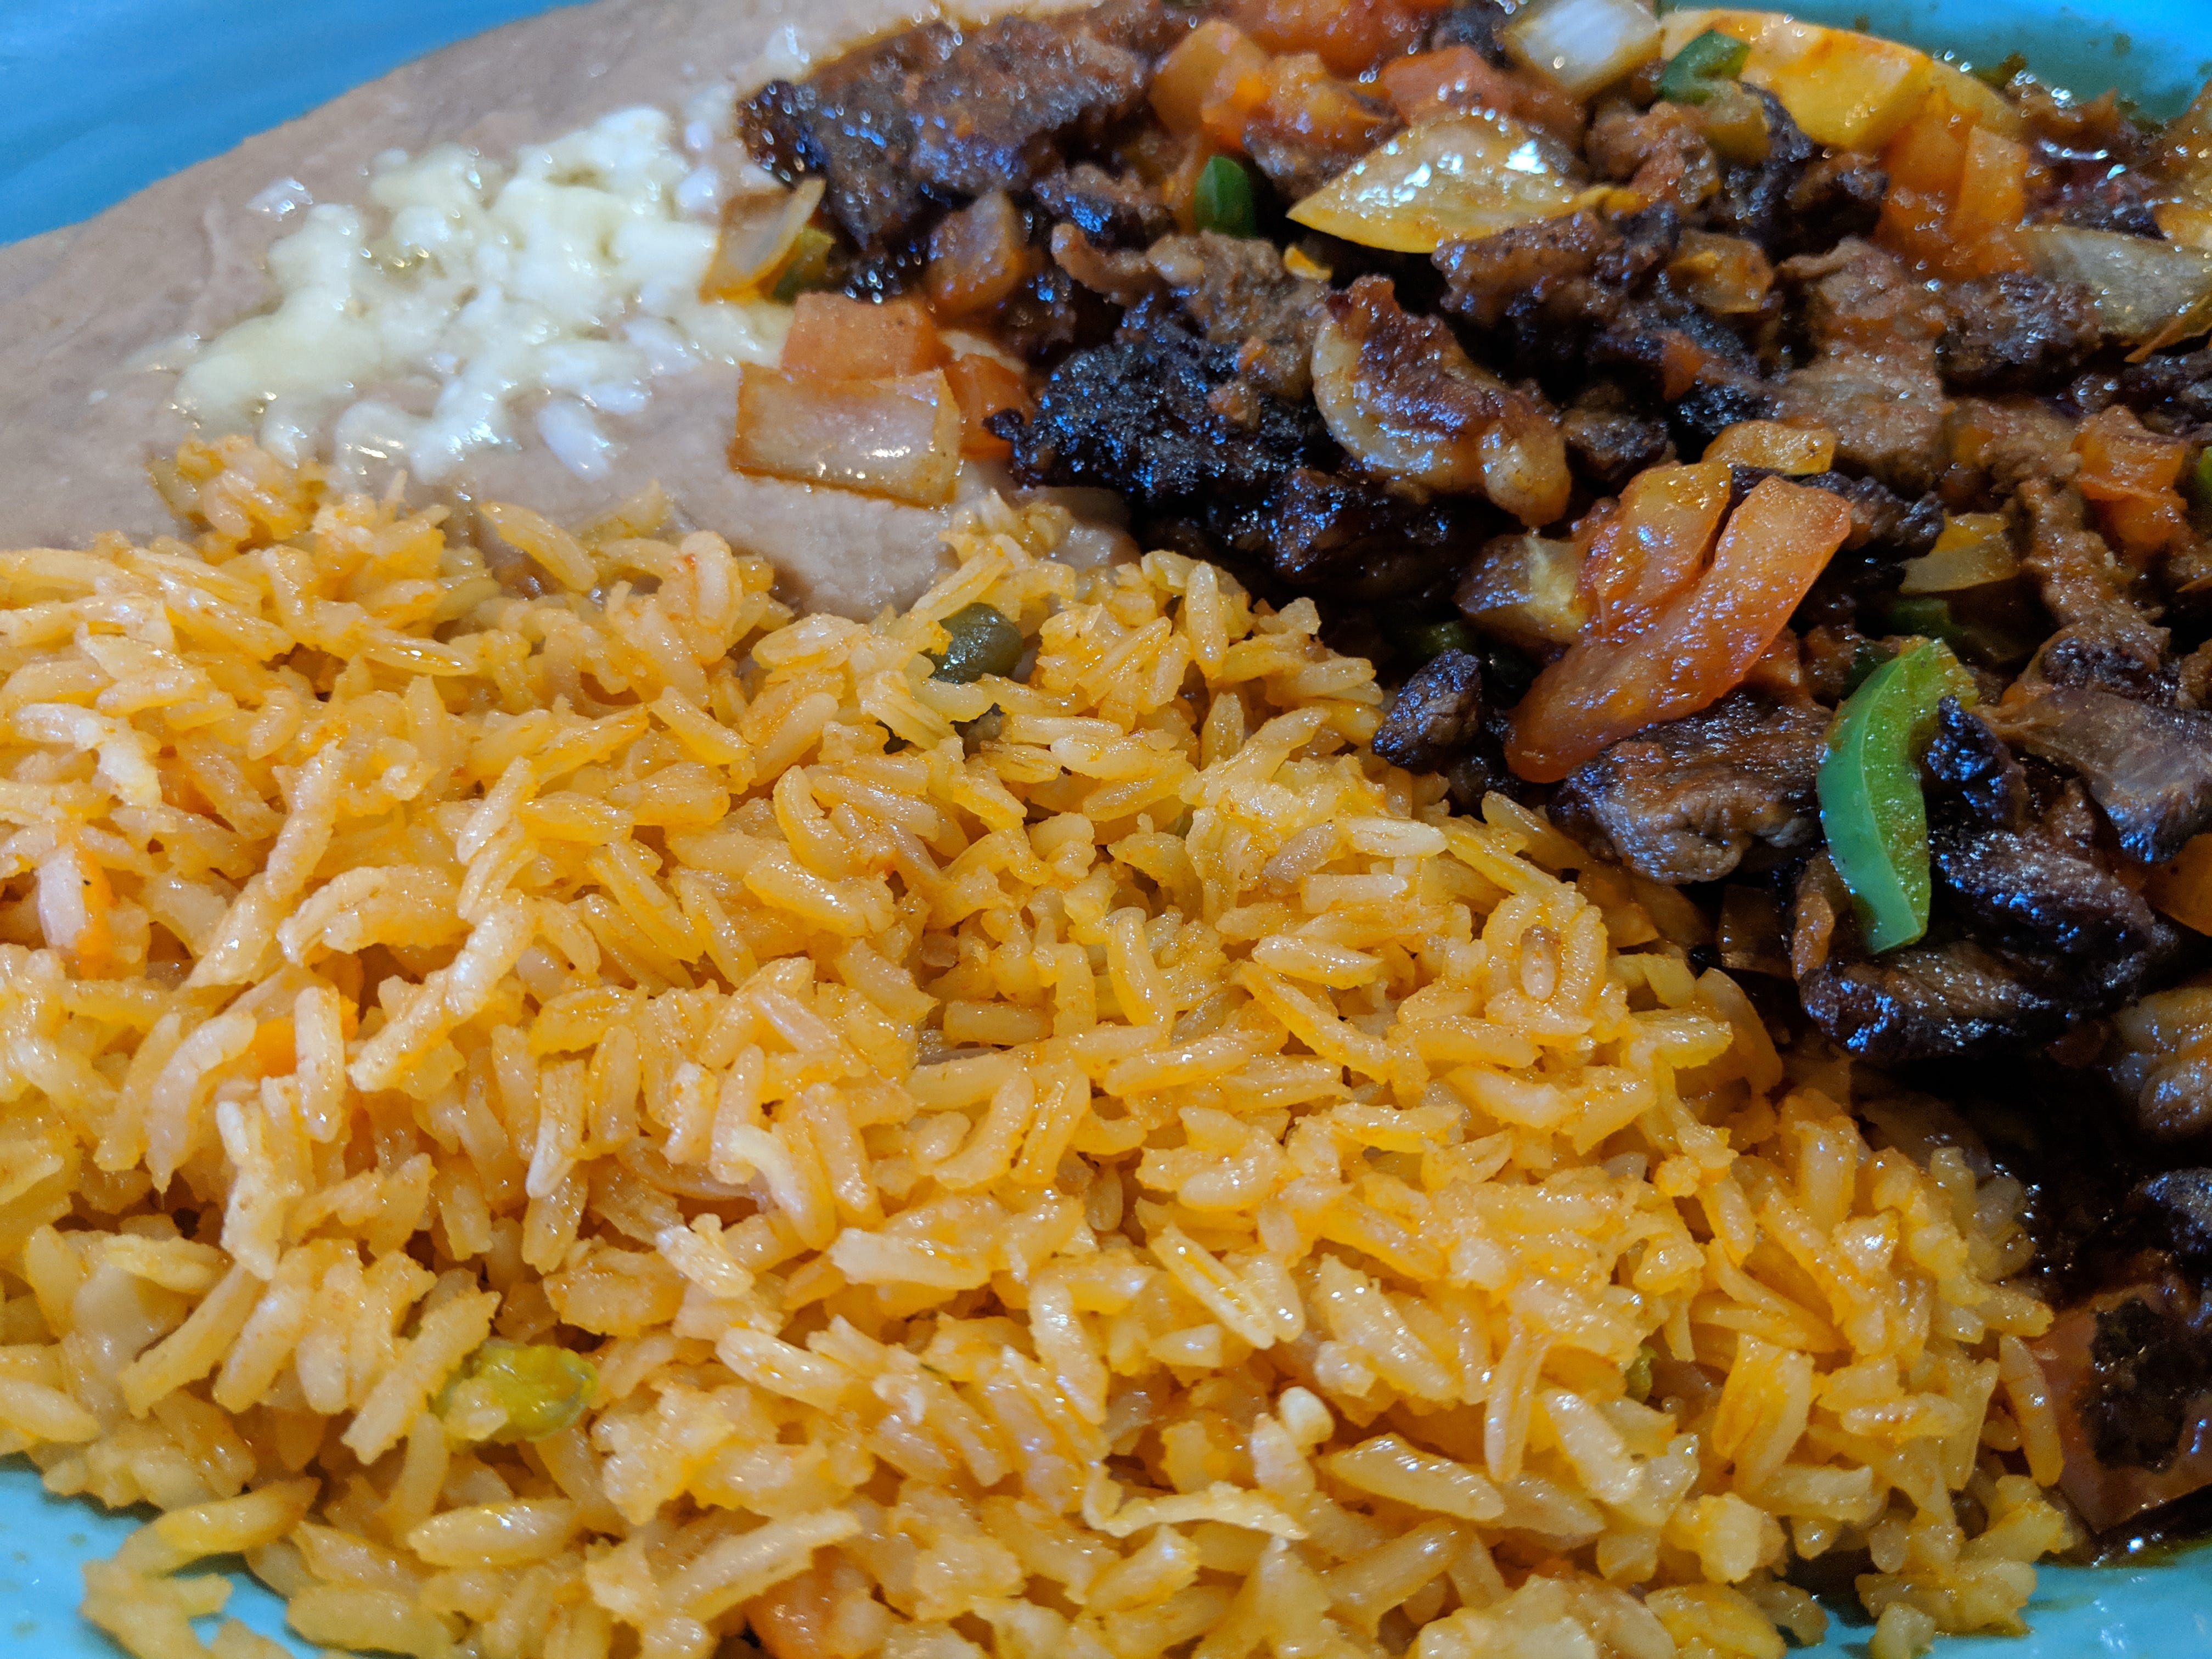 The Carne Mexicana at El Tapatio Authentic Mexican Restaurant.